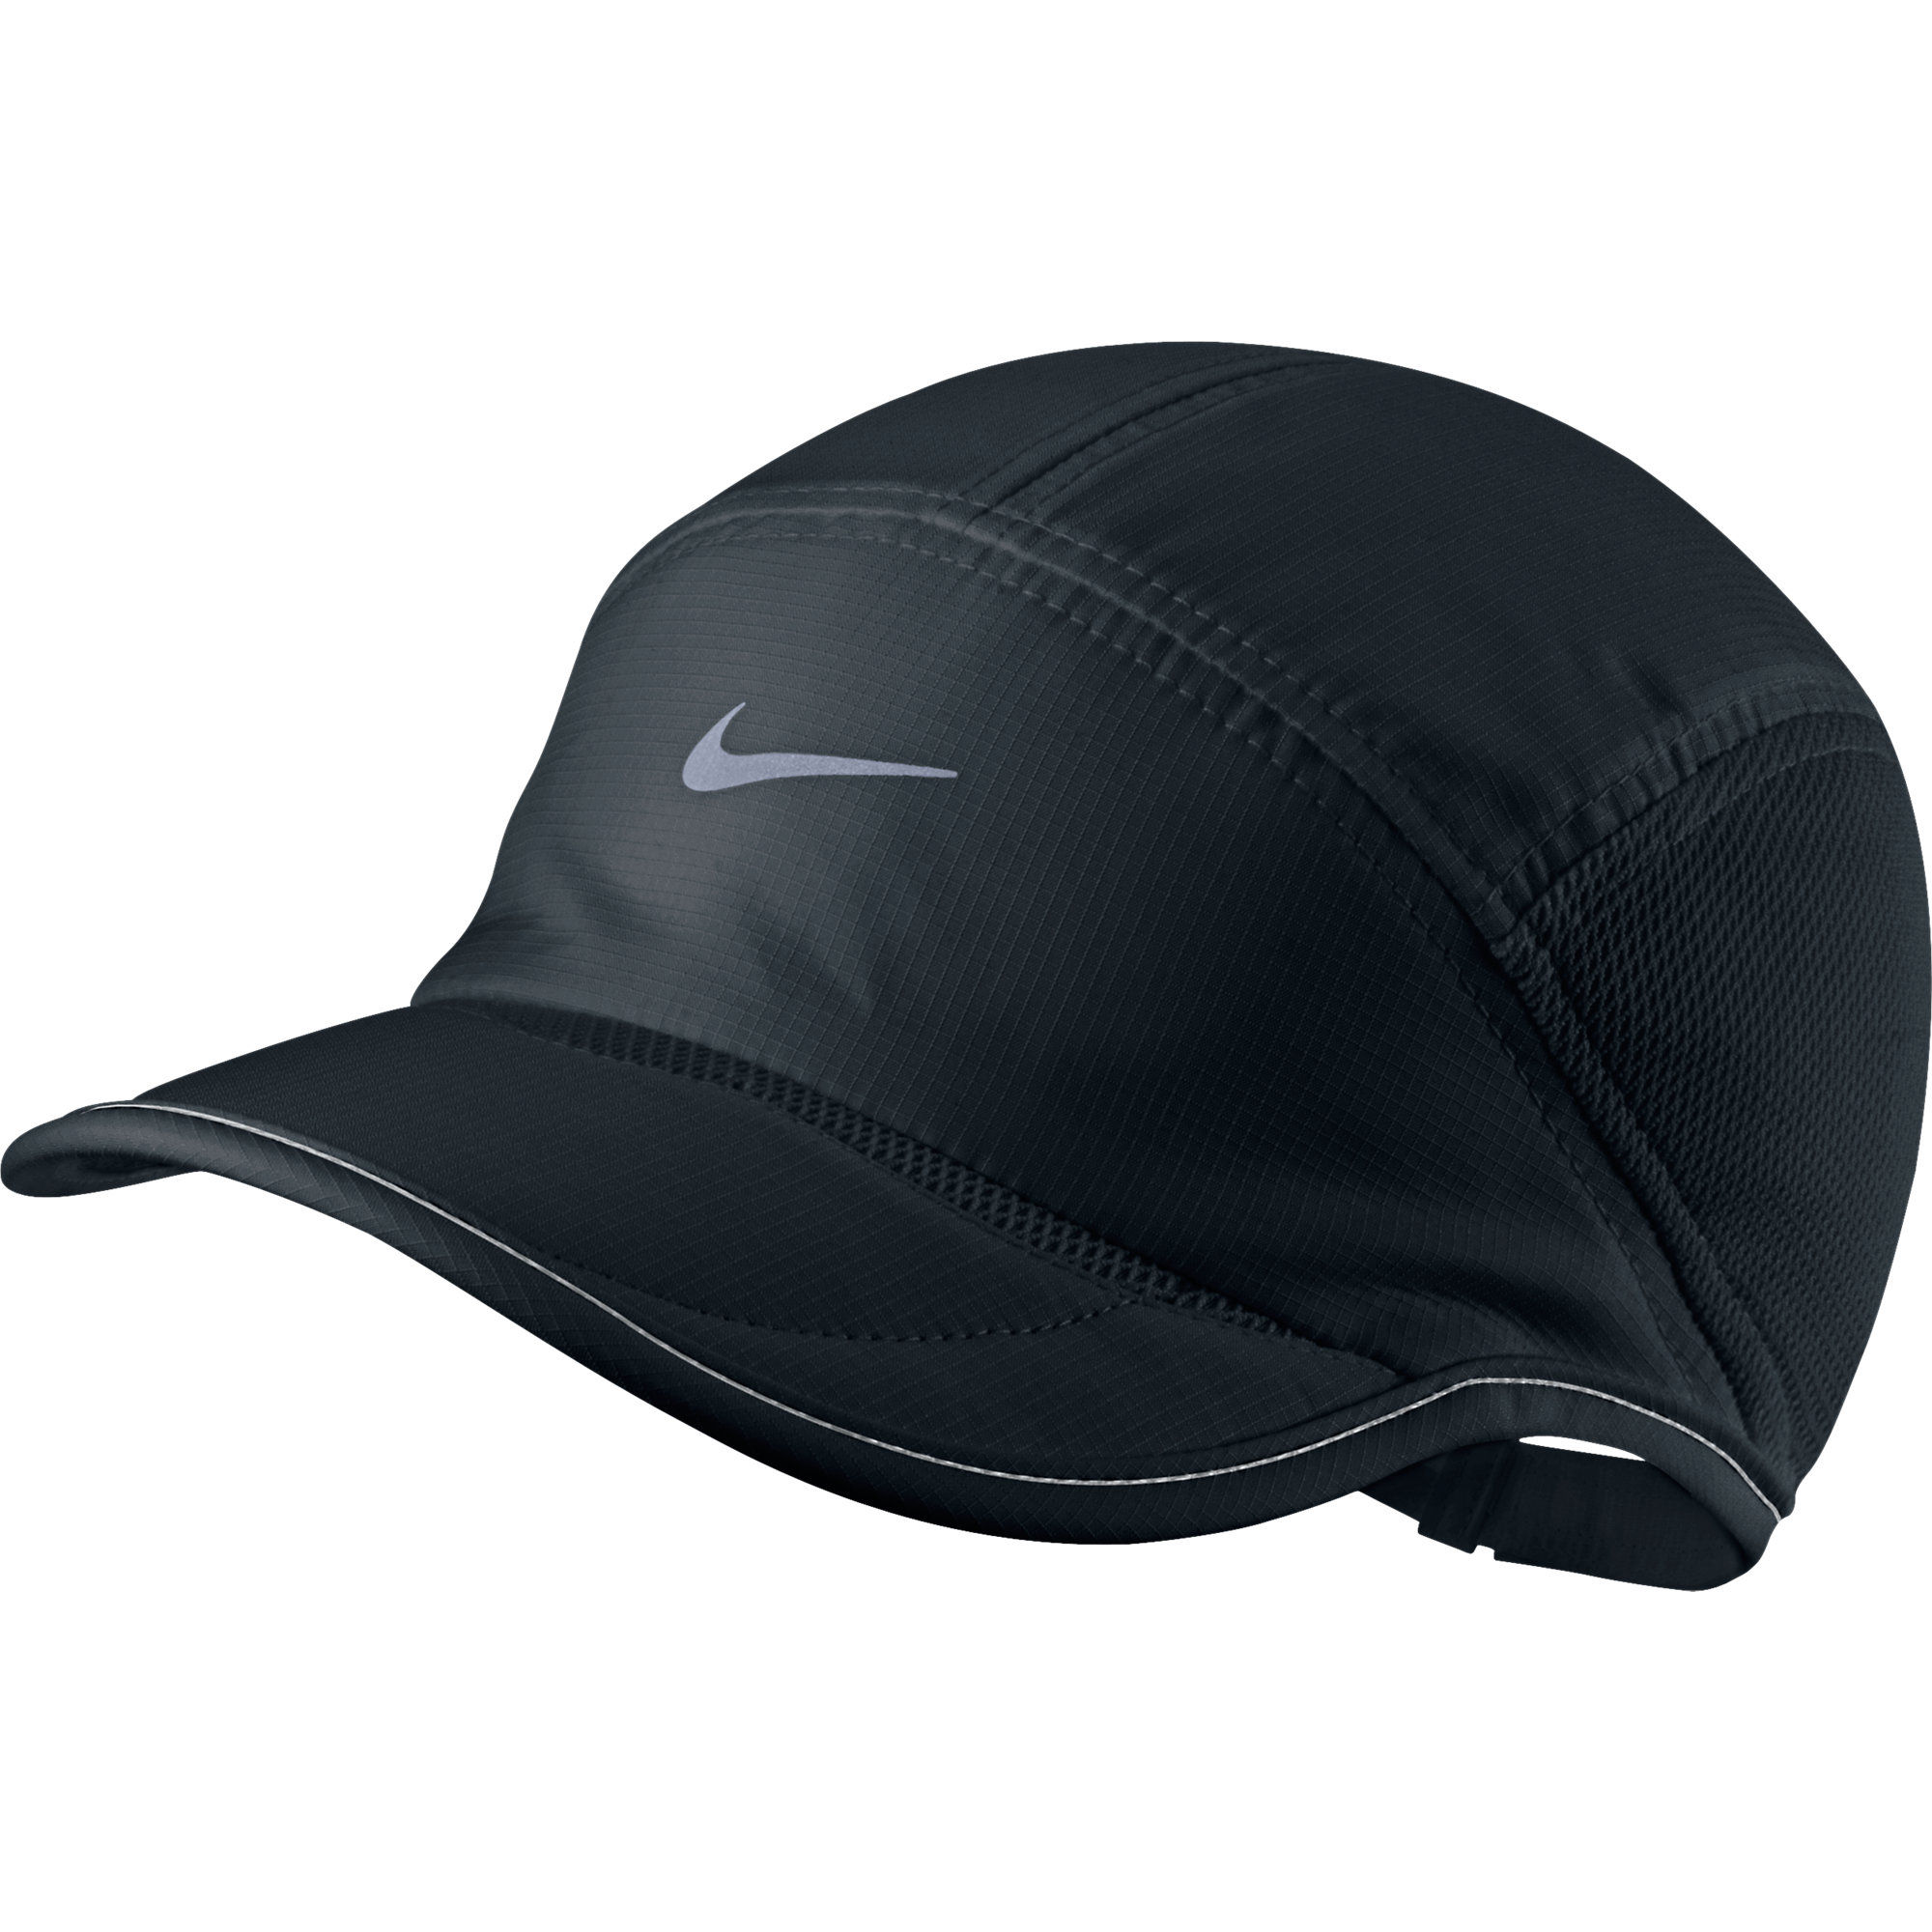 casquettes de running bonnets et autres nike ladies daybreak cap su13 wiggle france. Black Bedroom Furniture Sets. Home Design Ideas